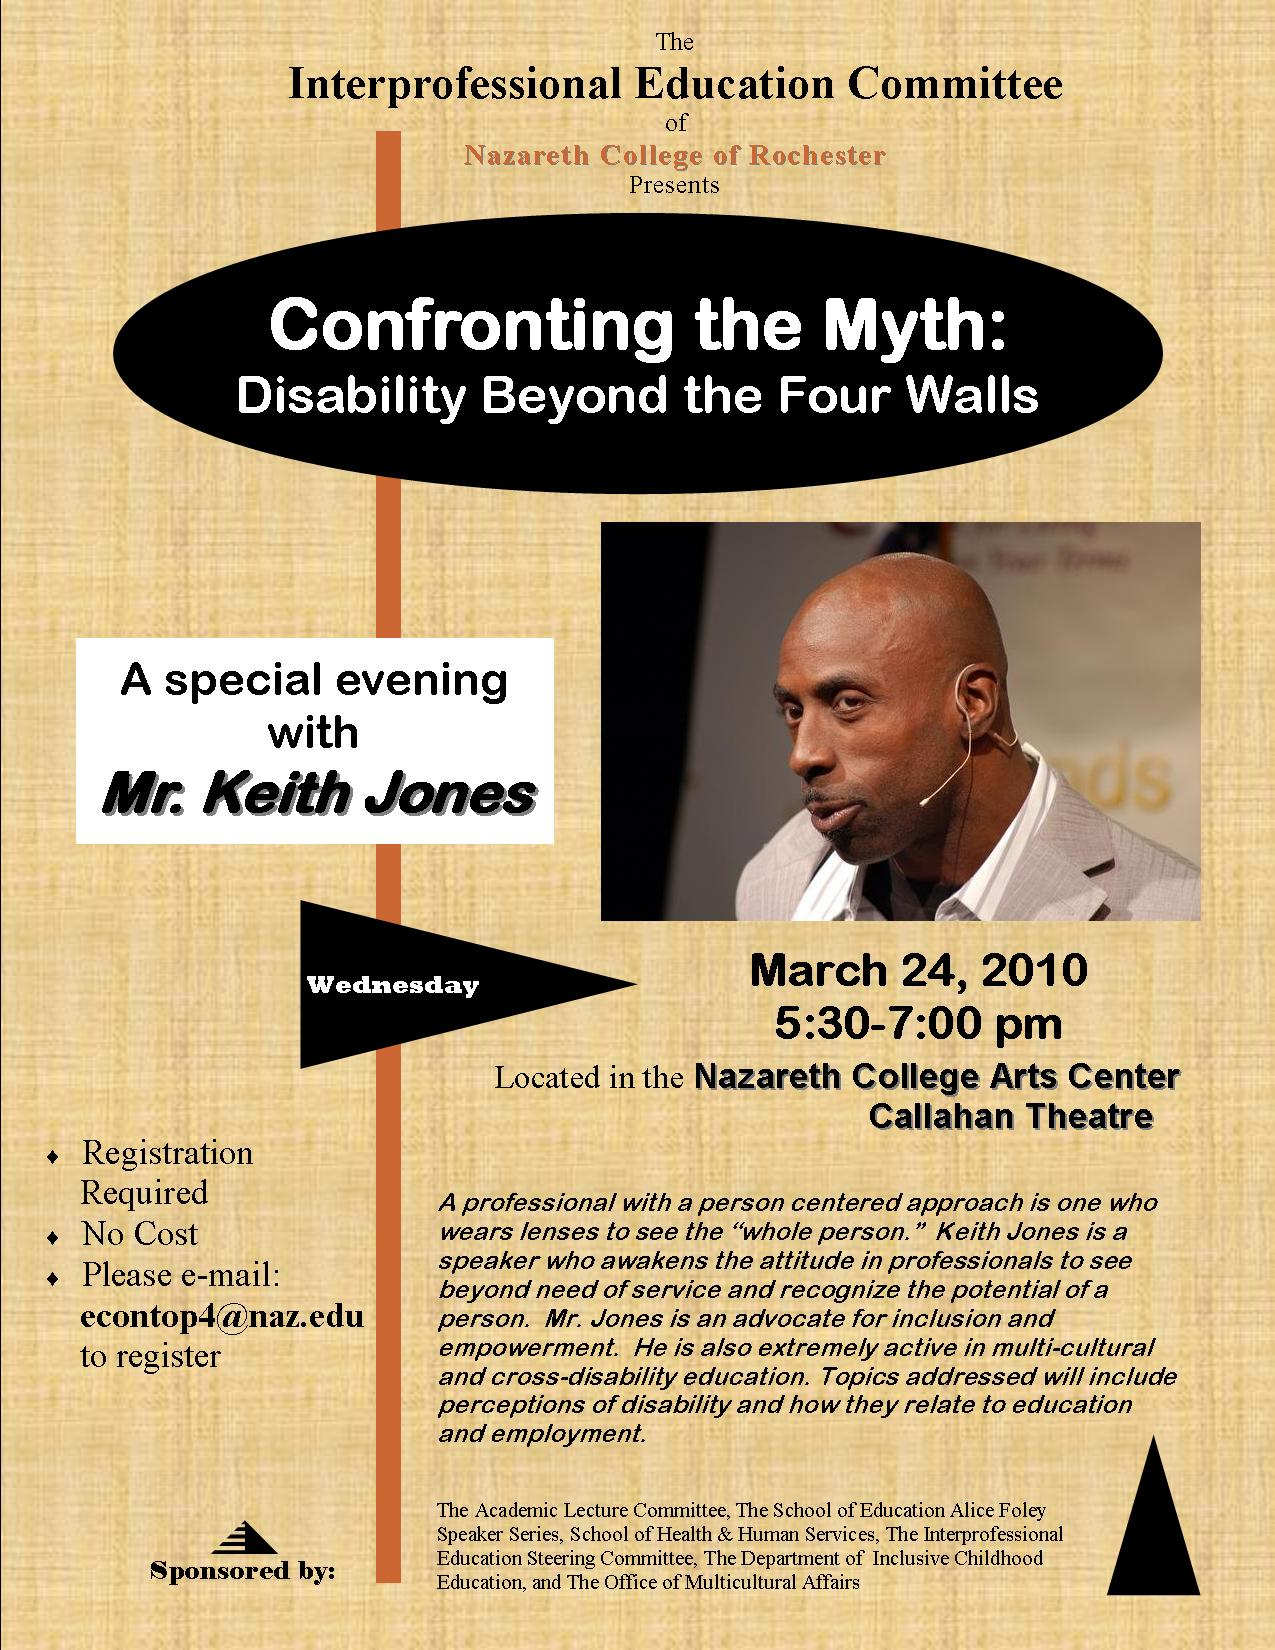 Flier for Keith Jones